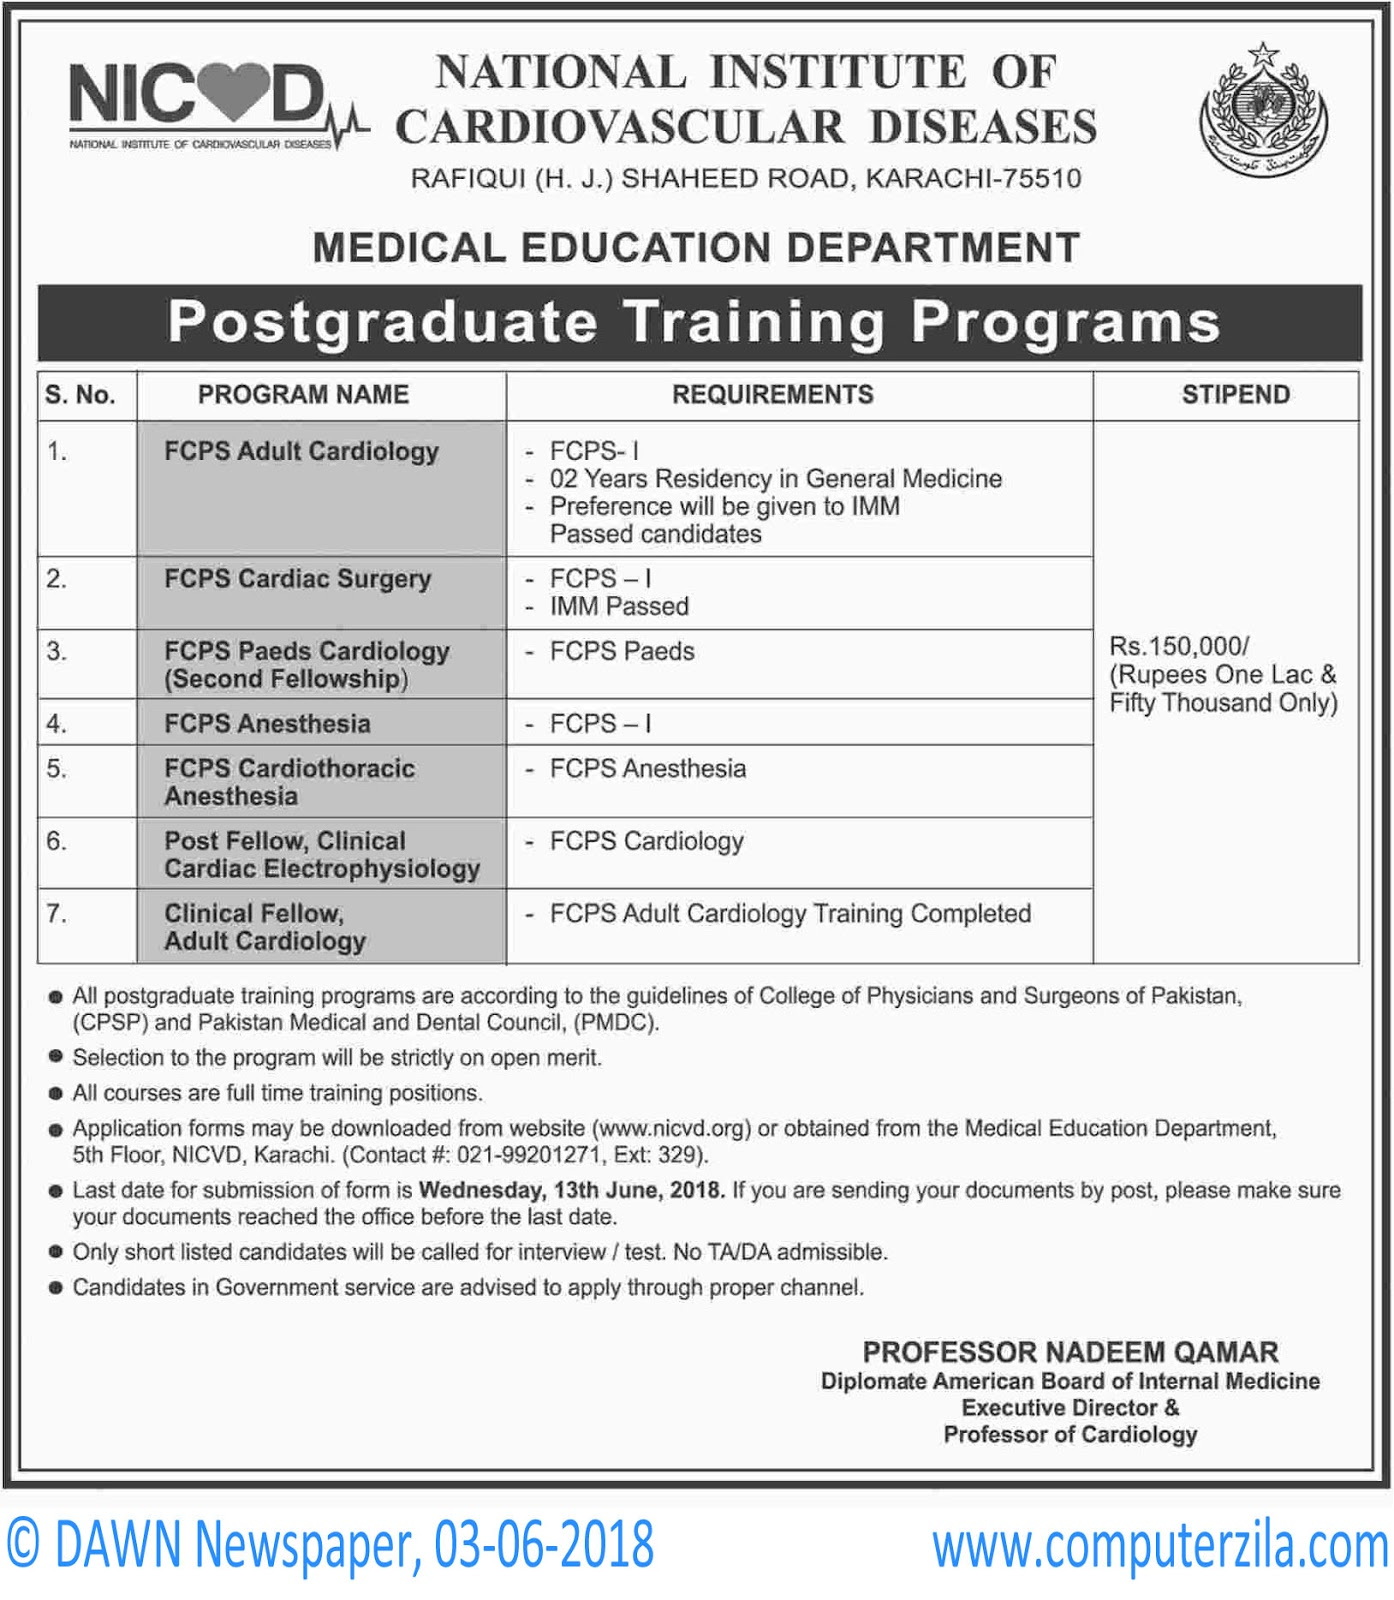 National Institute of Cardiovascular Diseases Admissions Fall 2018